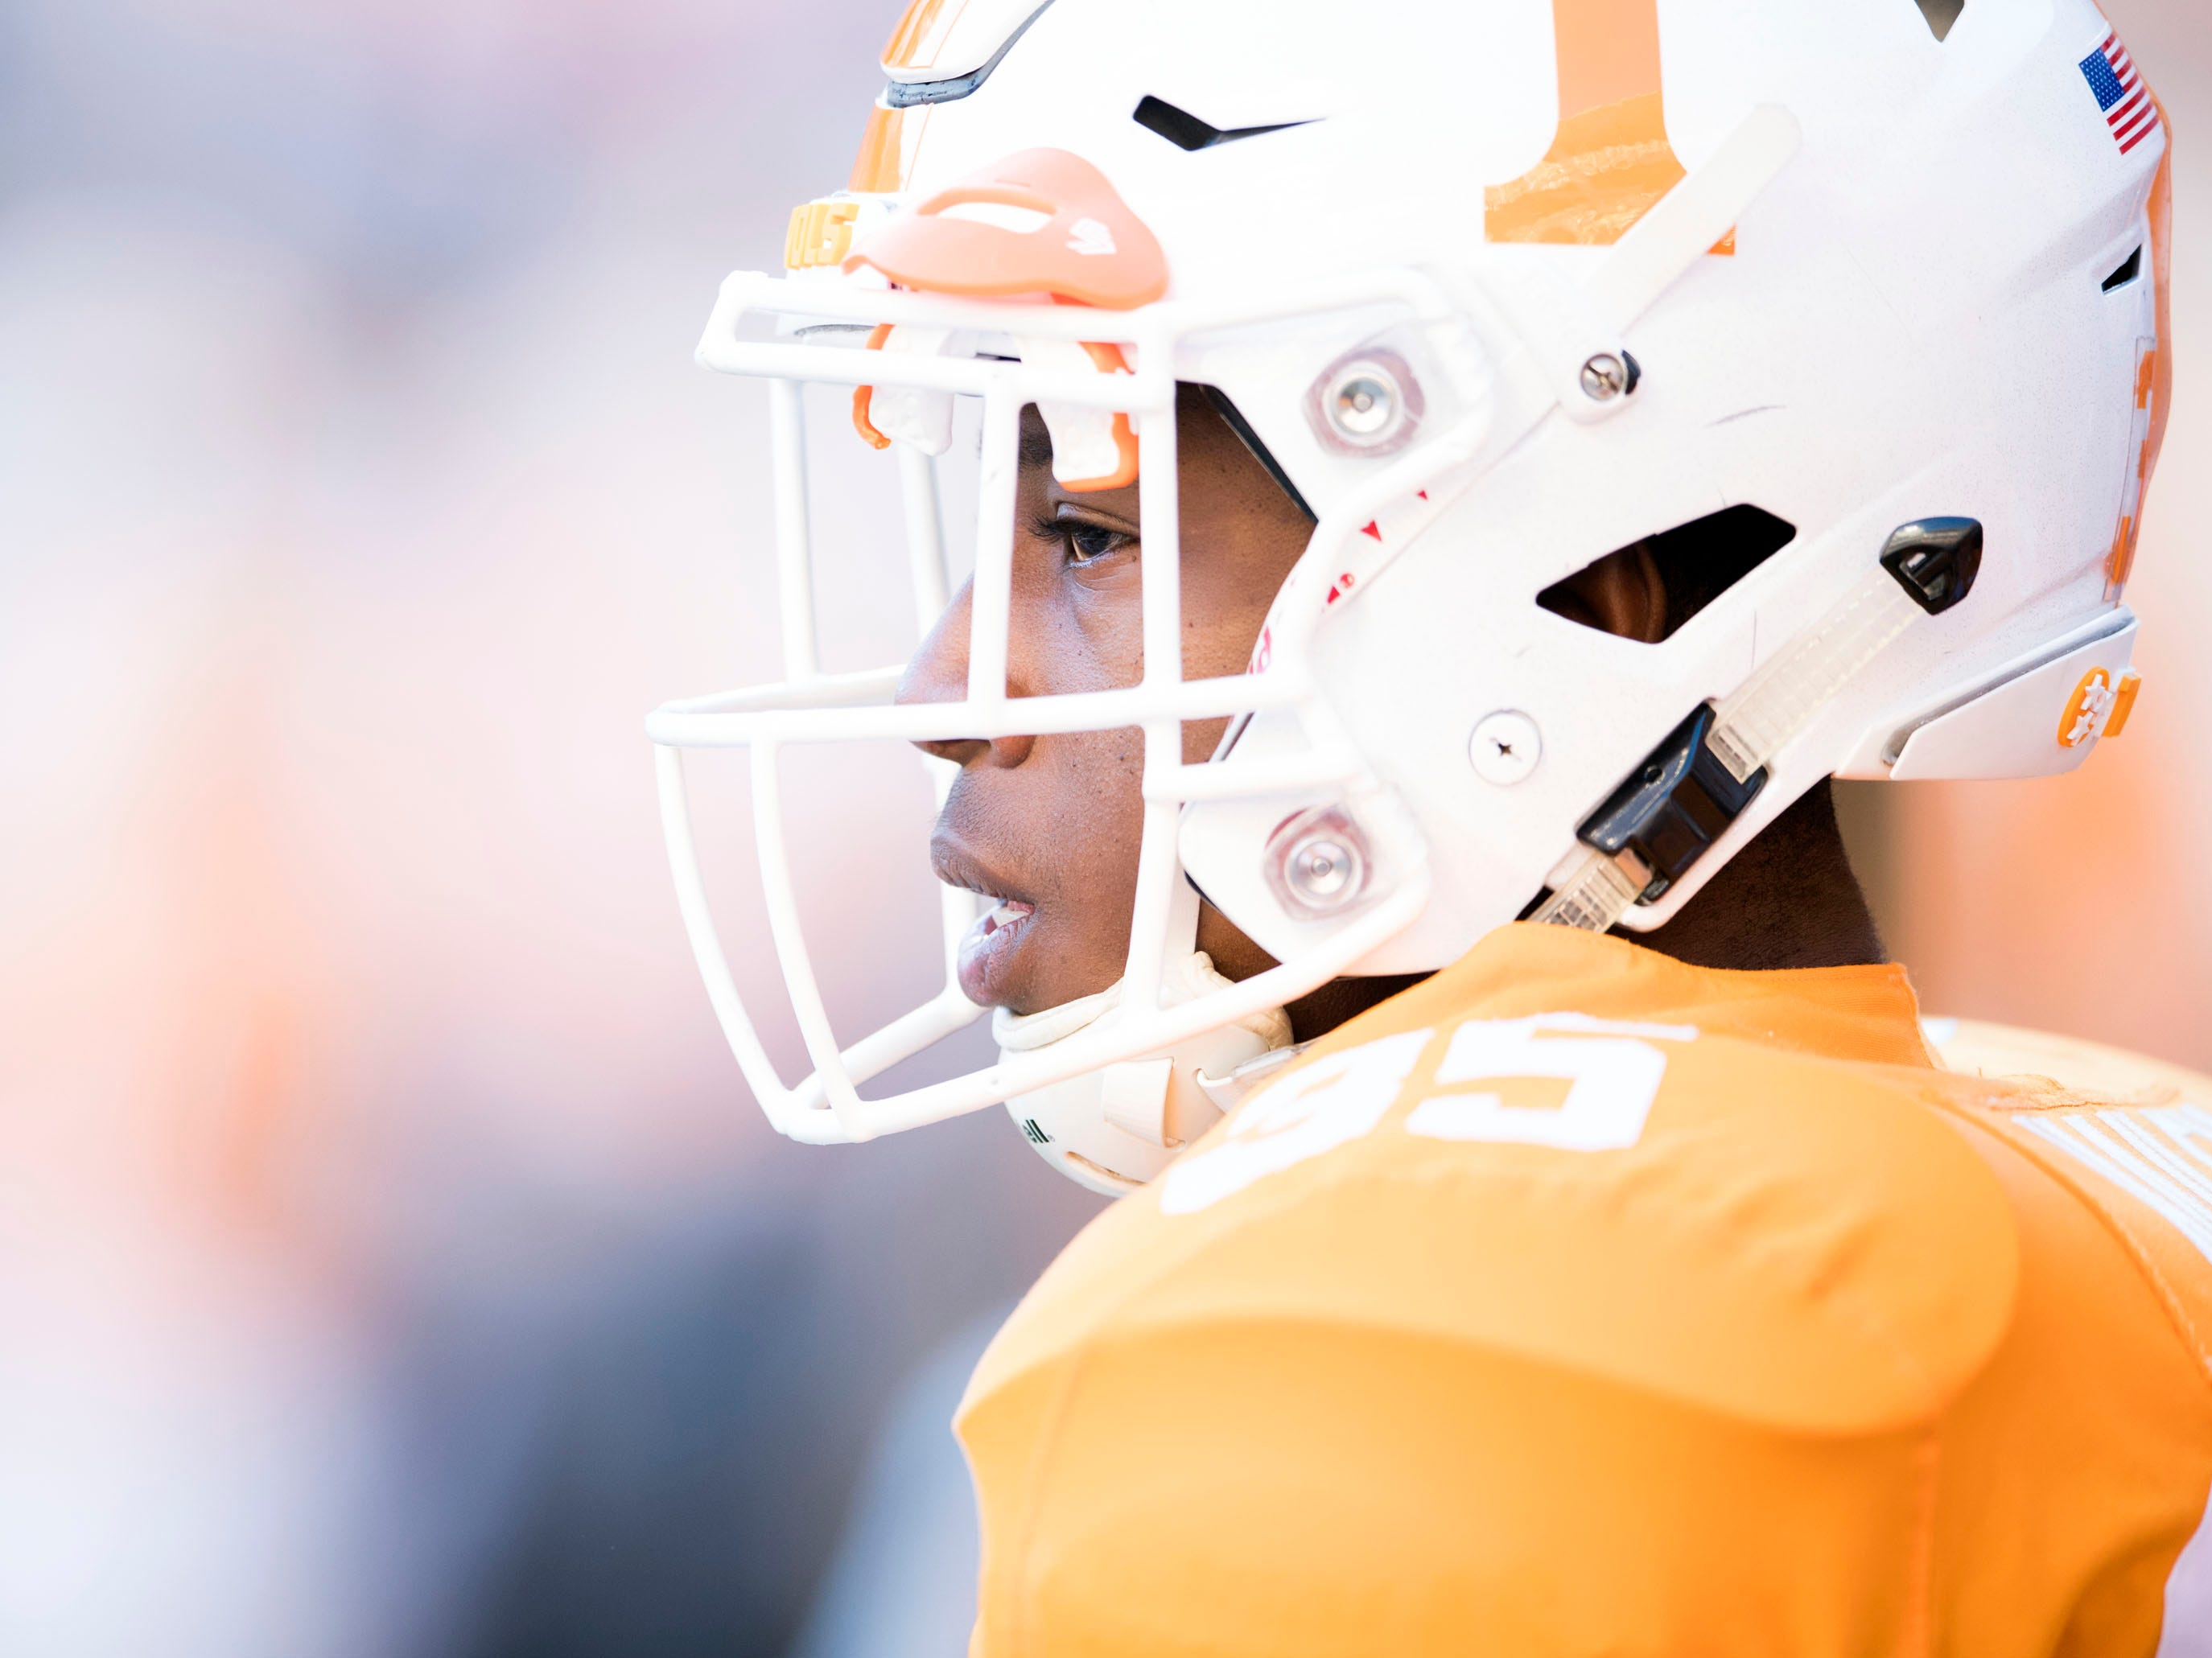 Tennessee linebacker Daniel Bituli (35) before start of the game against Missouri on Saturday, November 17, 2018.